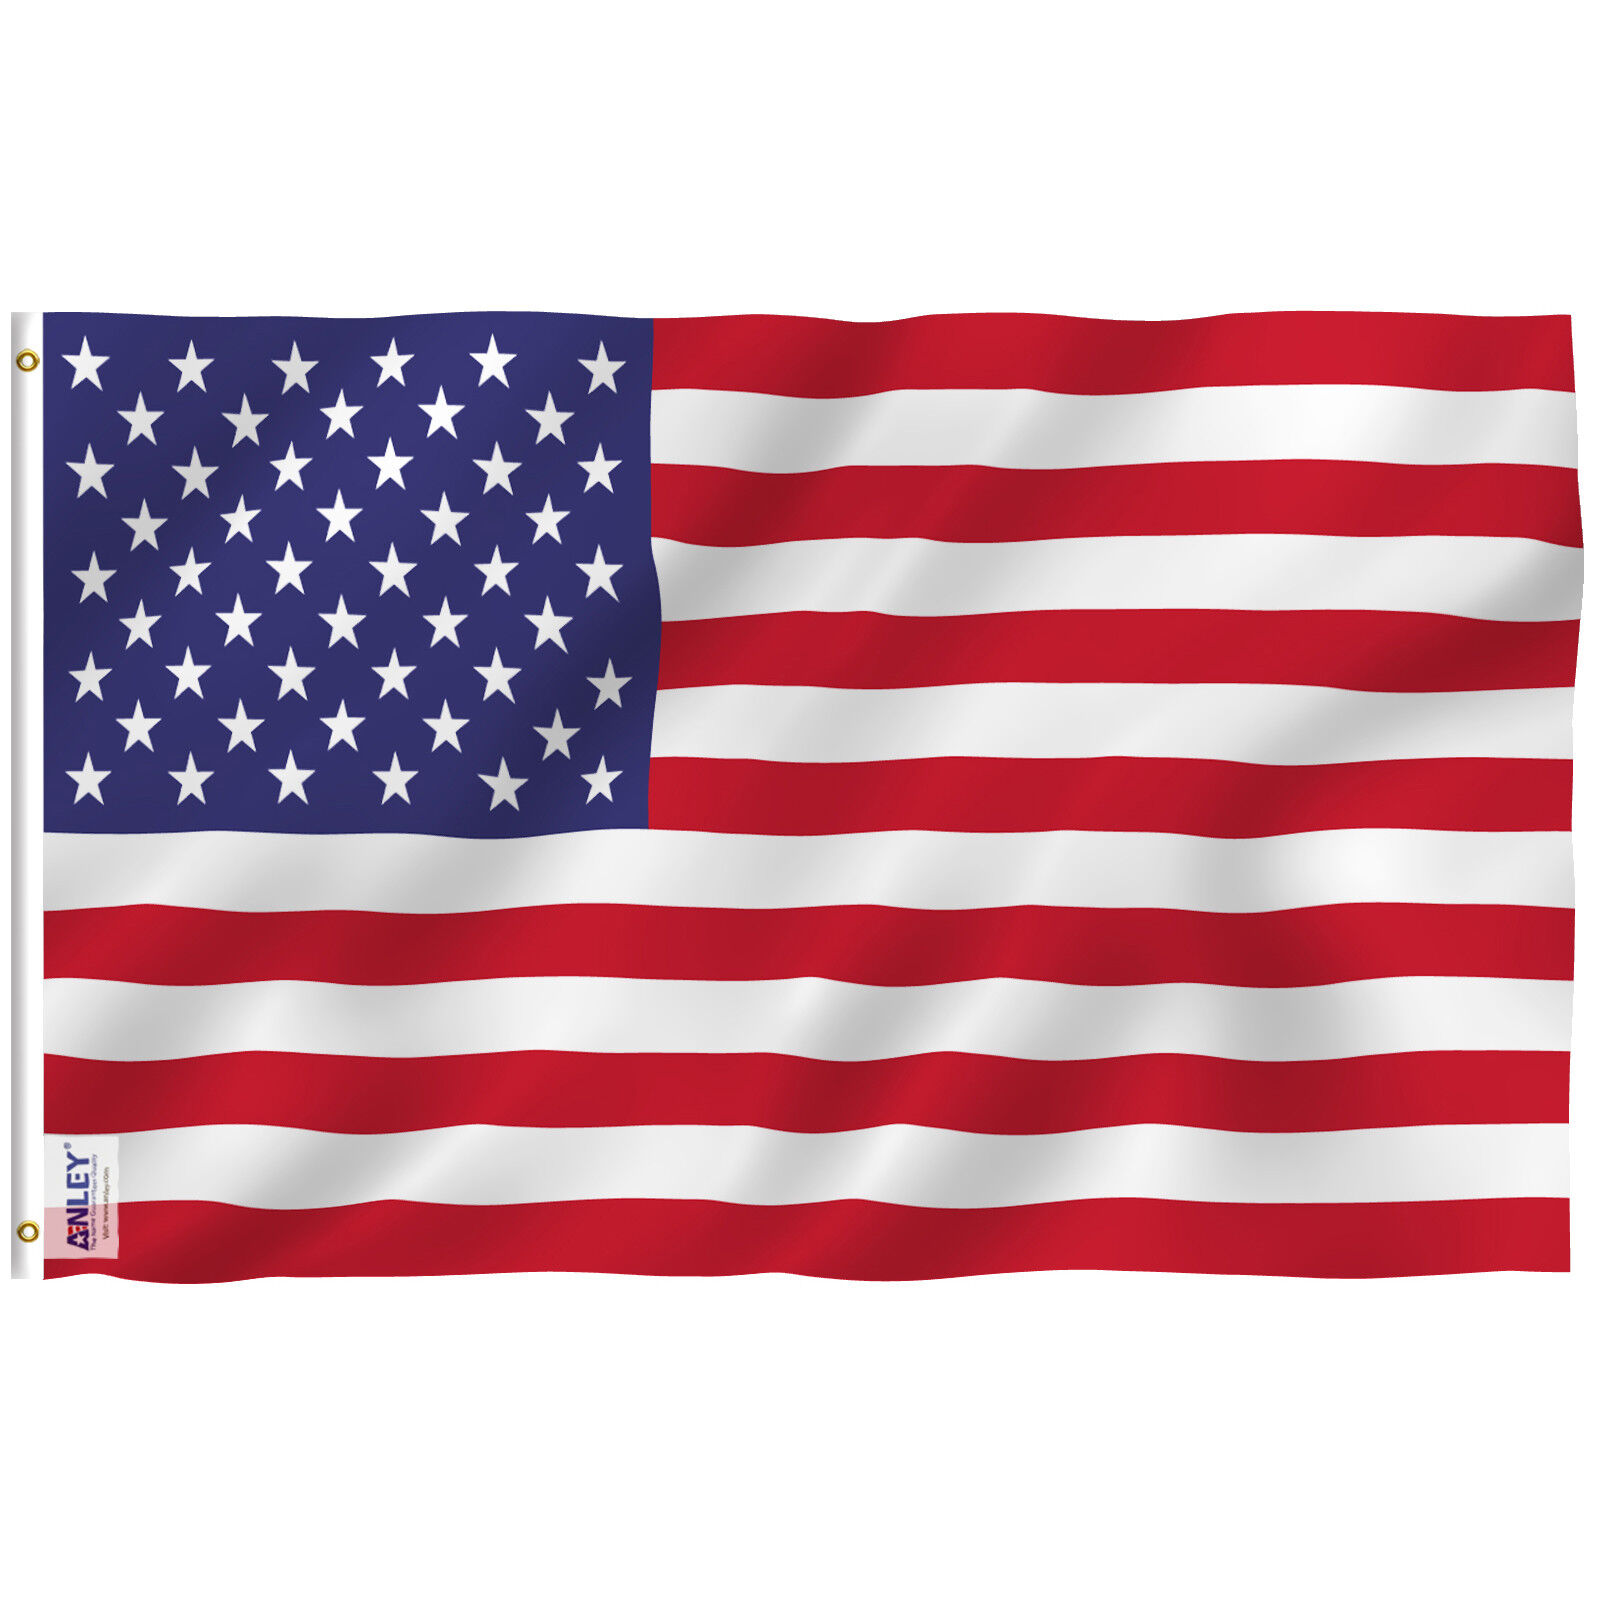 Anley Fly Breeze 3x5 Foot American US Polyester Flag USA Fla